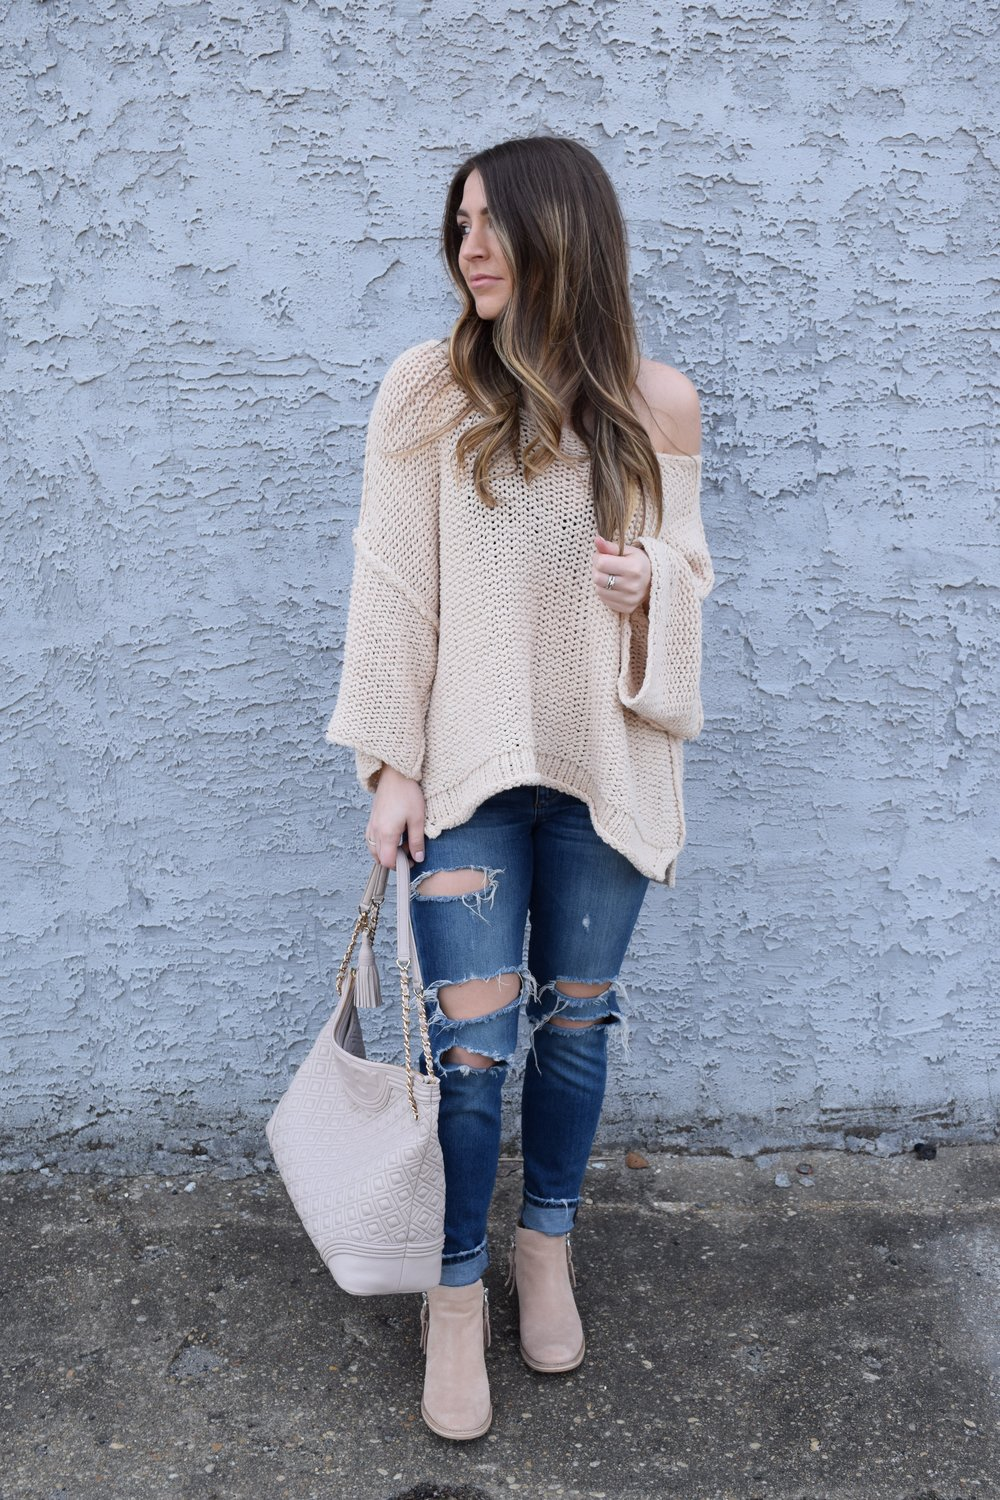 free people sweater, distressed denim, booties